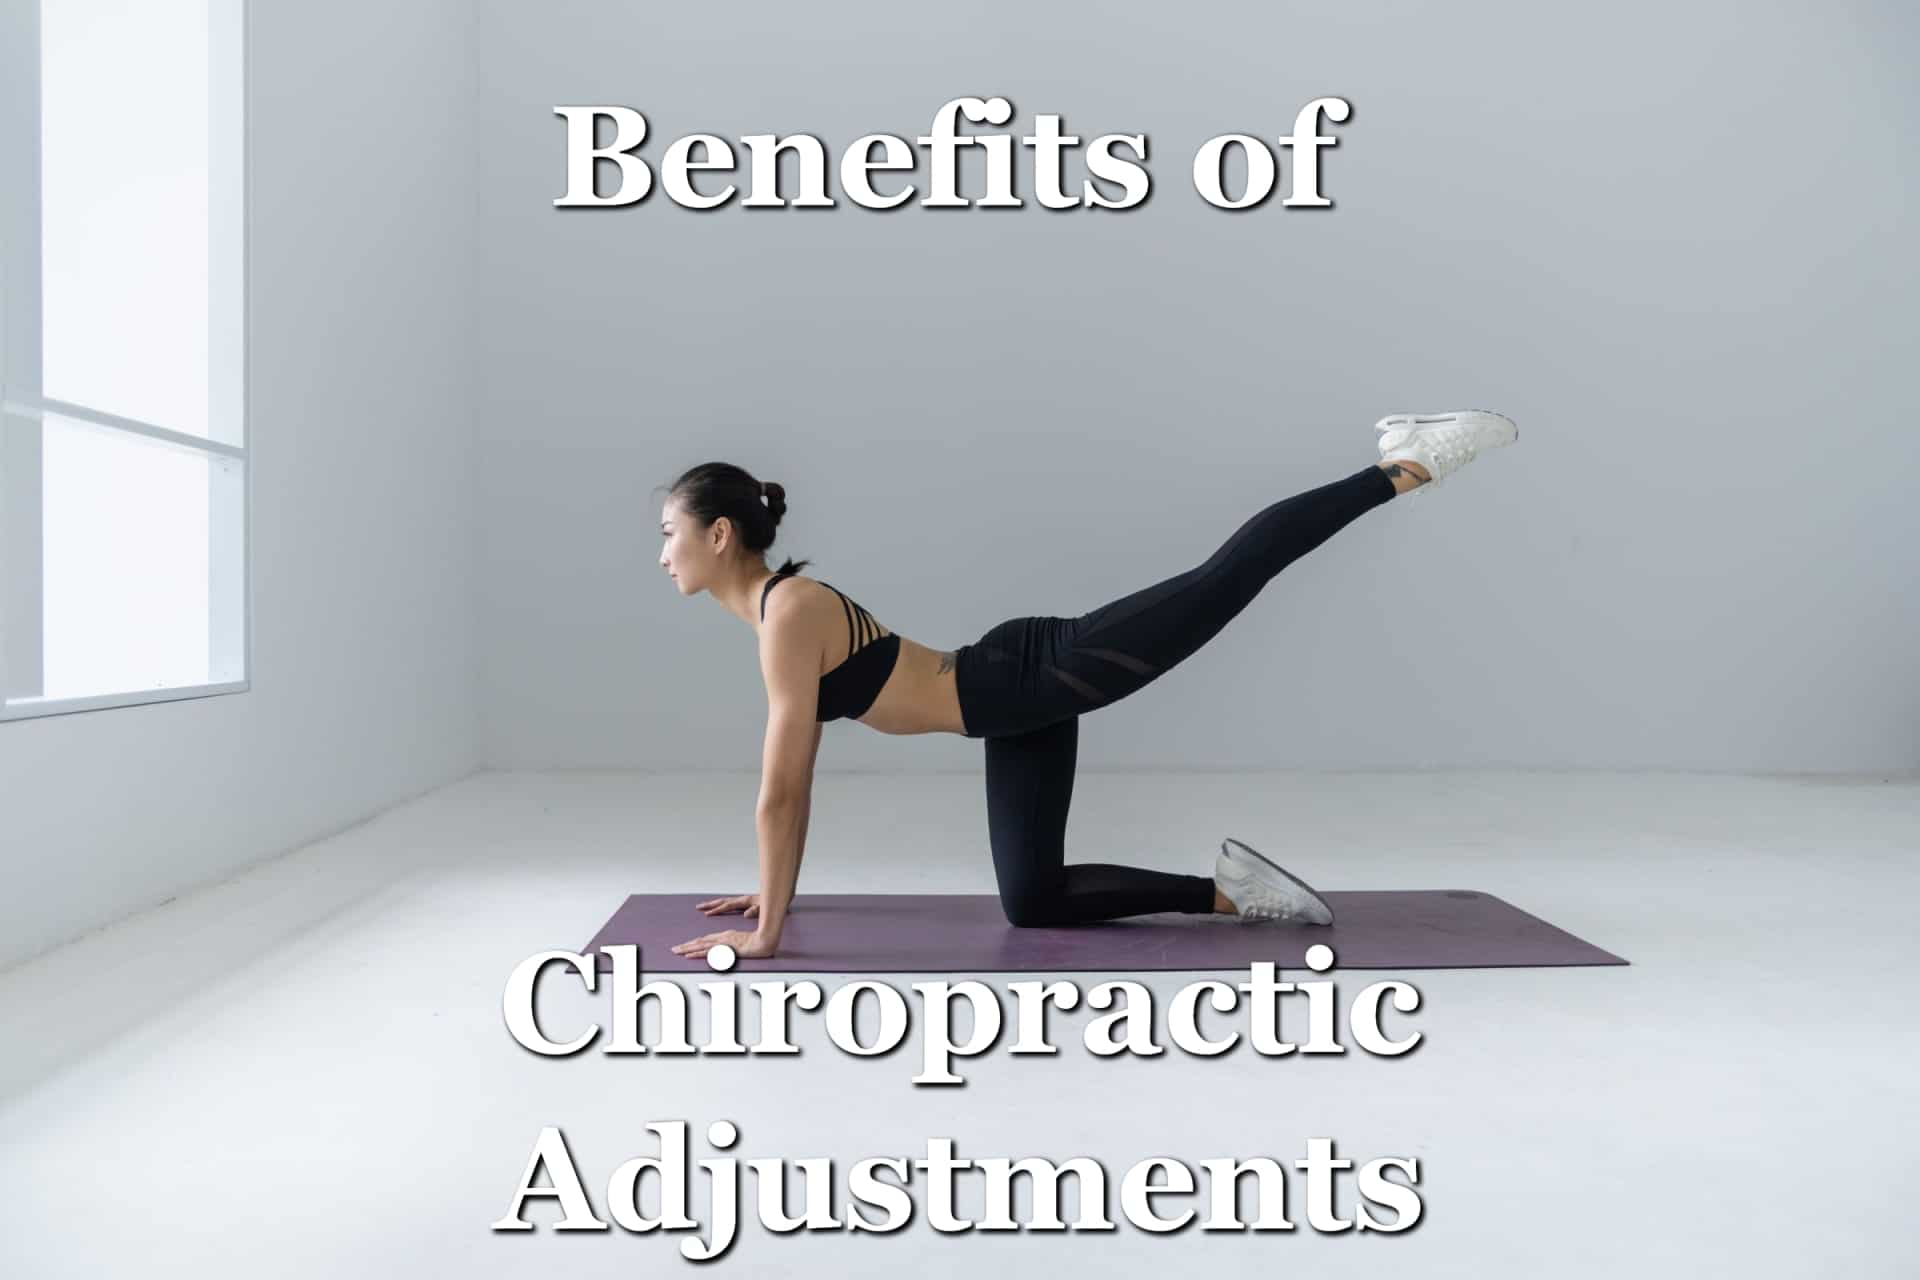 Top 15 Benefits of Chiropractic Adjustments